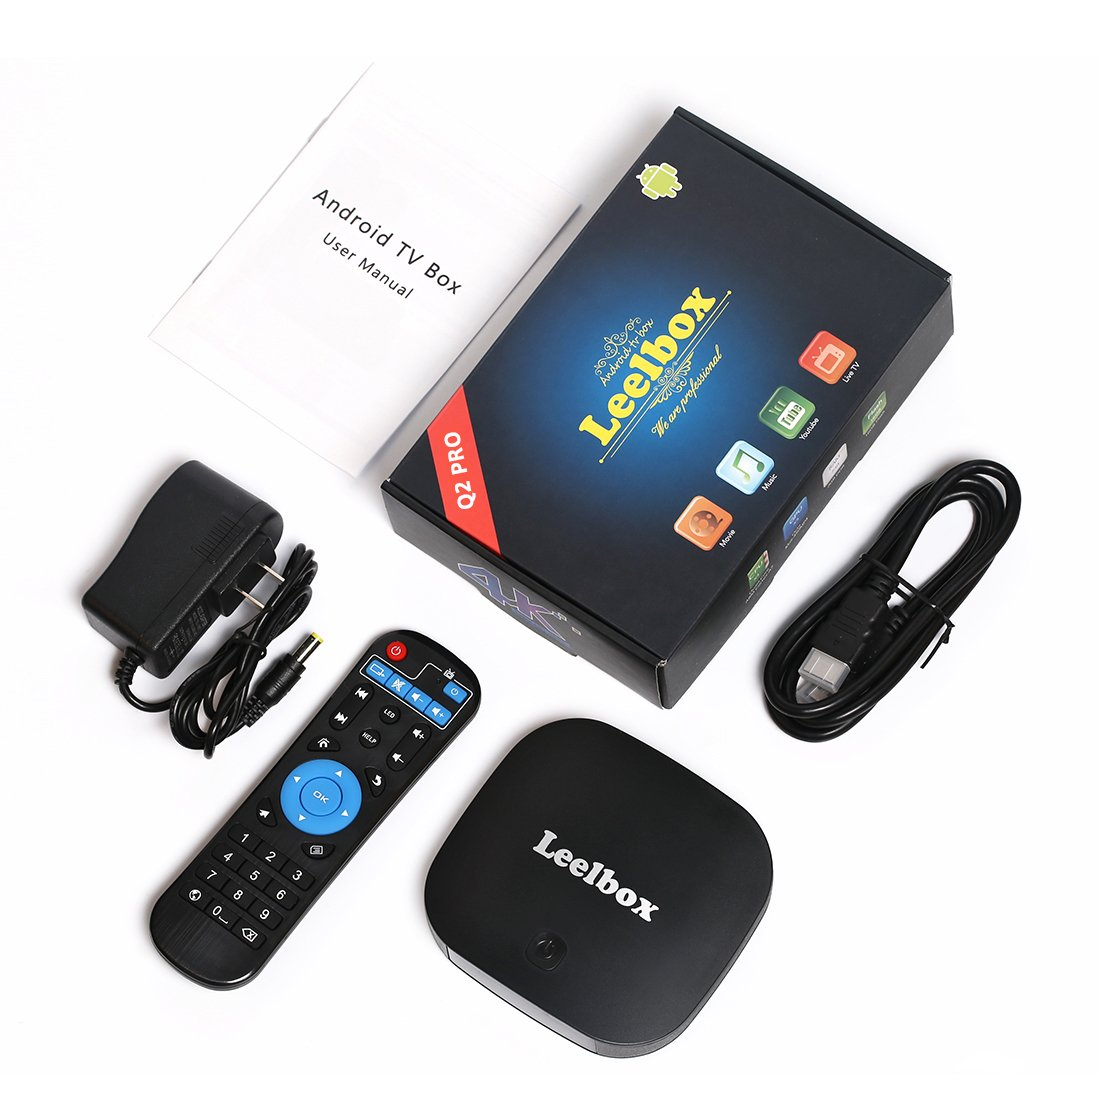 [2018 Edition] Leelbox Q2 pro Android 7.1 TV Box 2GB+16GB Dual-WiFi 2.4GHz/5GHz with BT 4.0 Supporting 4K (60Hz) Full HD by Leelbox (Image #8)